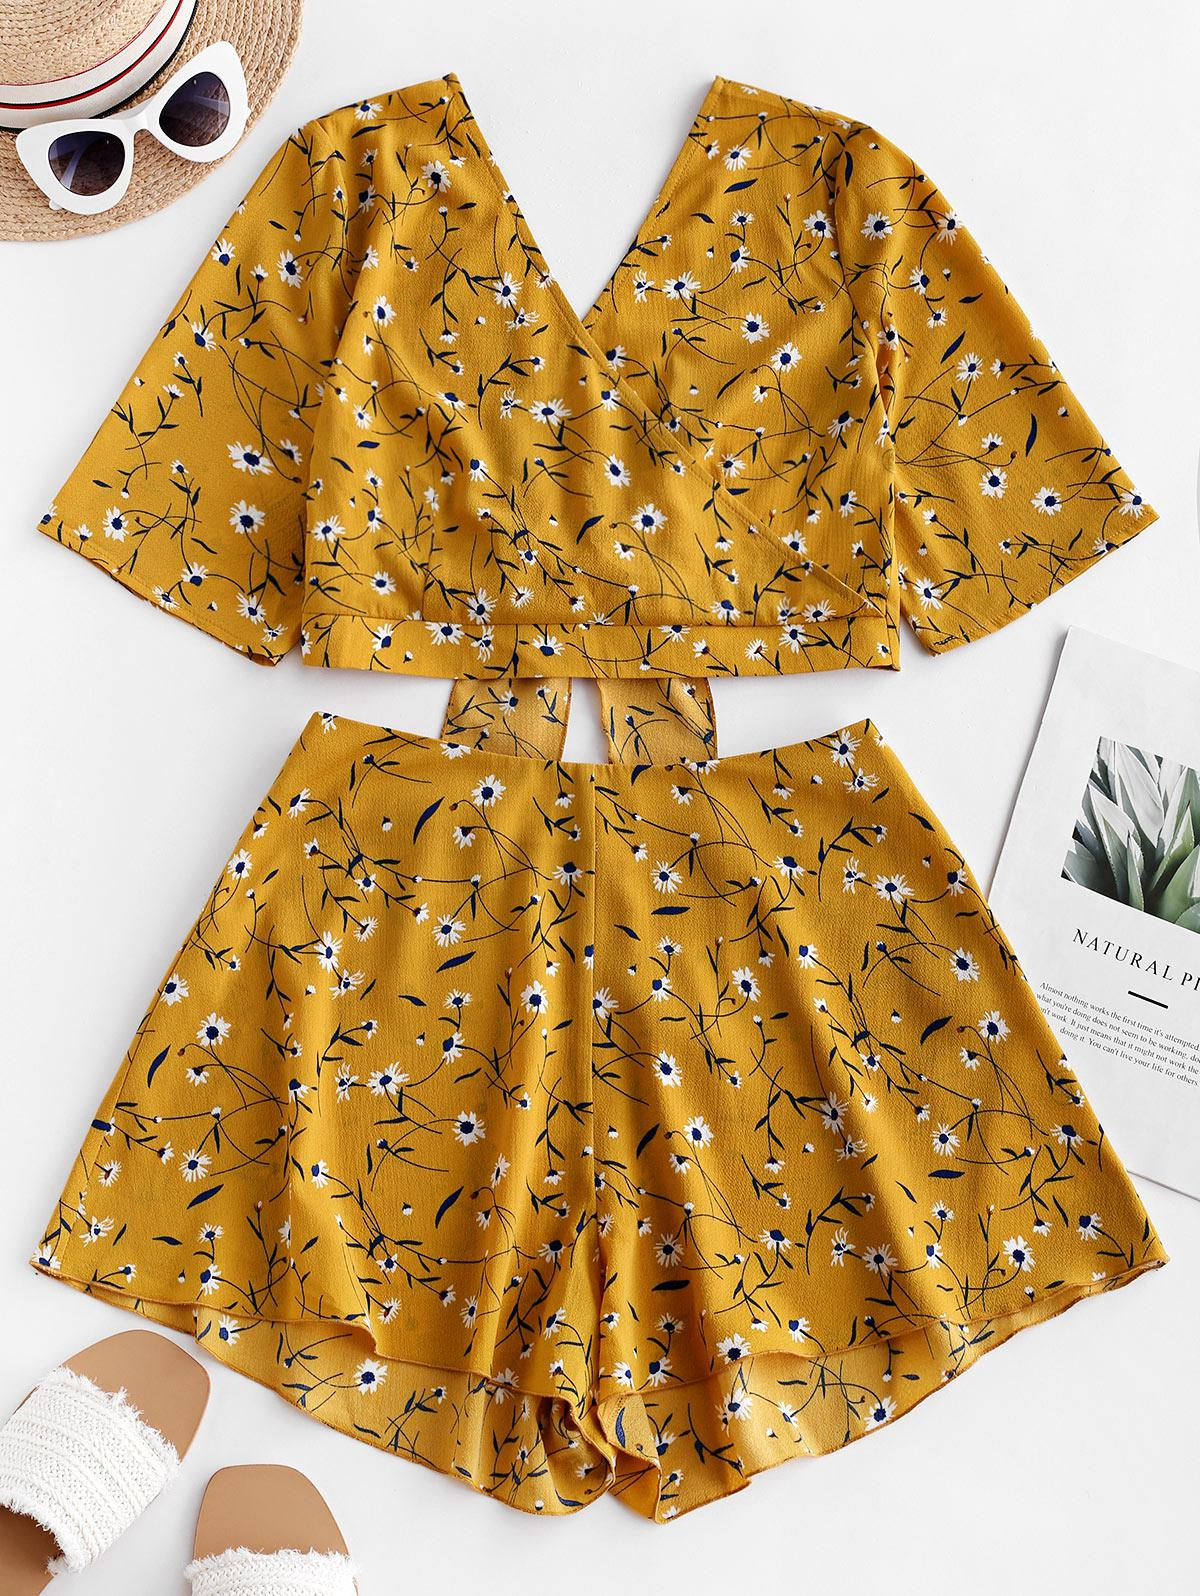 ZAFUL Knotted Surplice Ditsy Floral Two Piece Set, Bee yellow